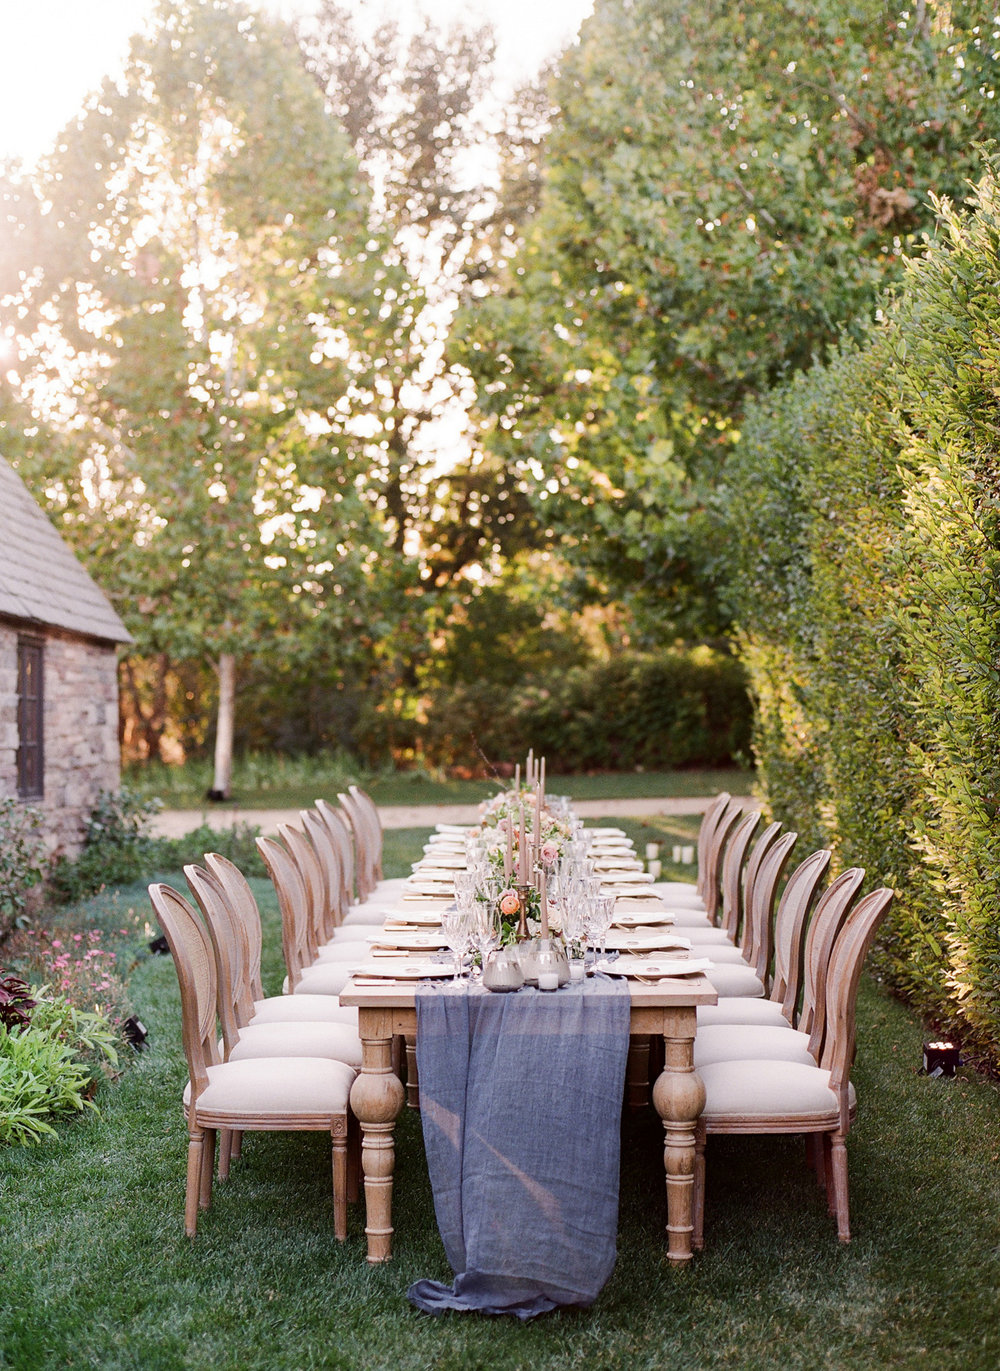 santa-barbara-elopement-elope-wedding-planner-planning-coordinator-day-of-intimate-event-design-kestrel-park-santa-ynez-english-country-estate-garden-castle (22).jpg